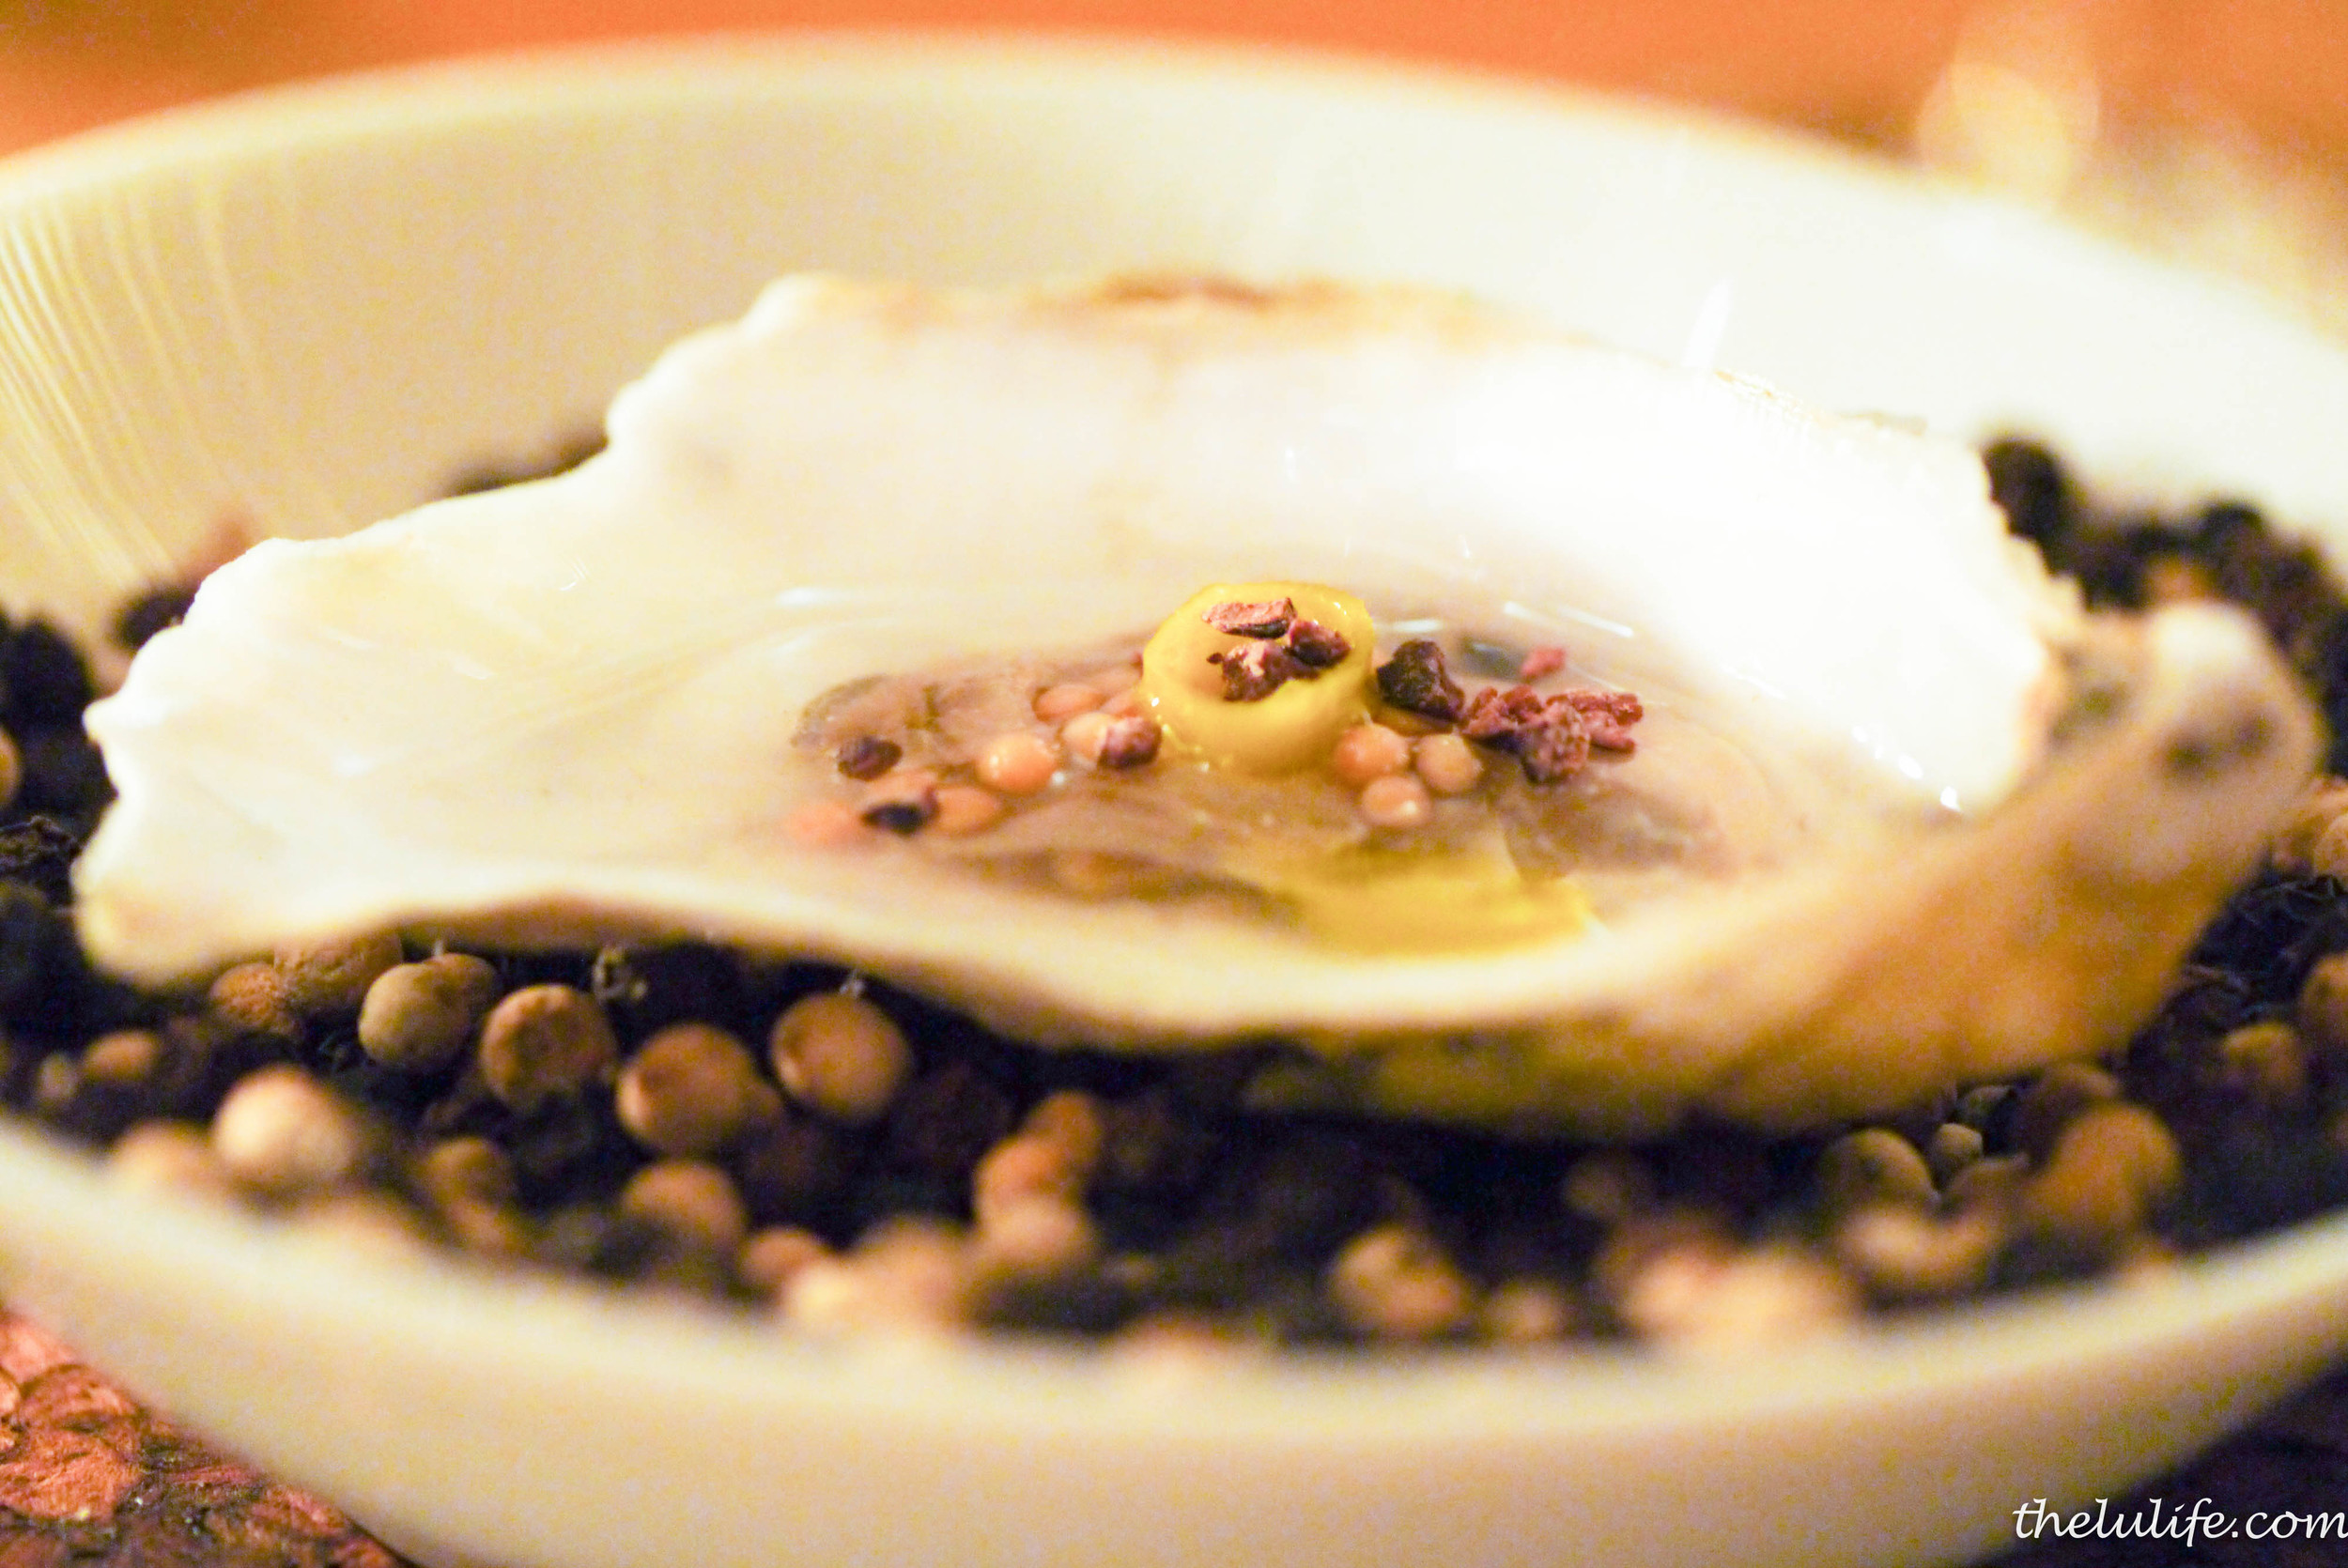 Figure 2. Oyster with mustard seeds and green onion